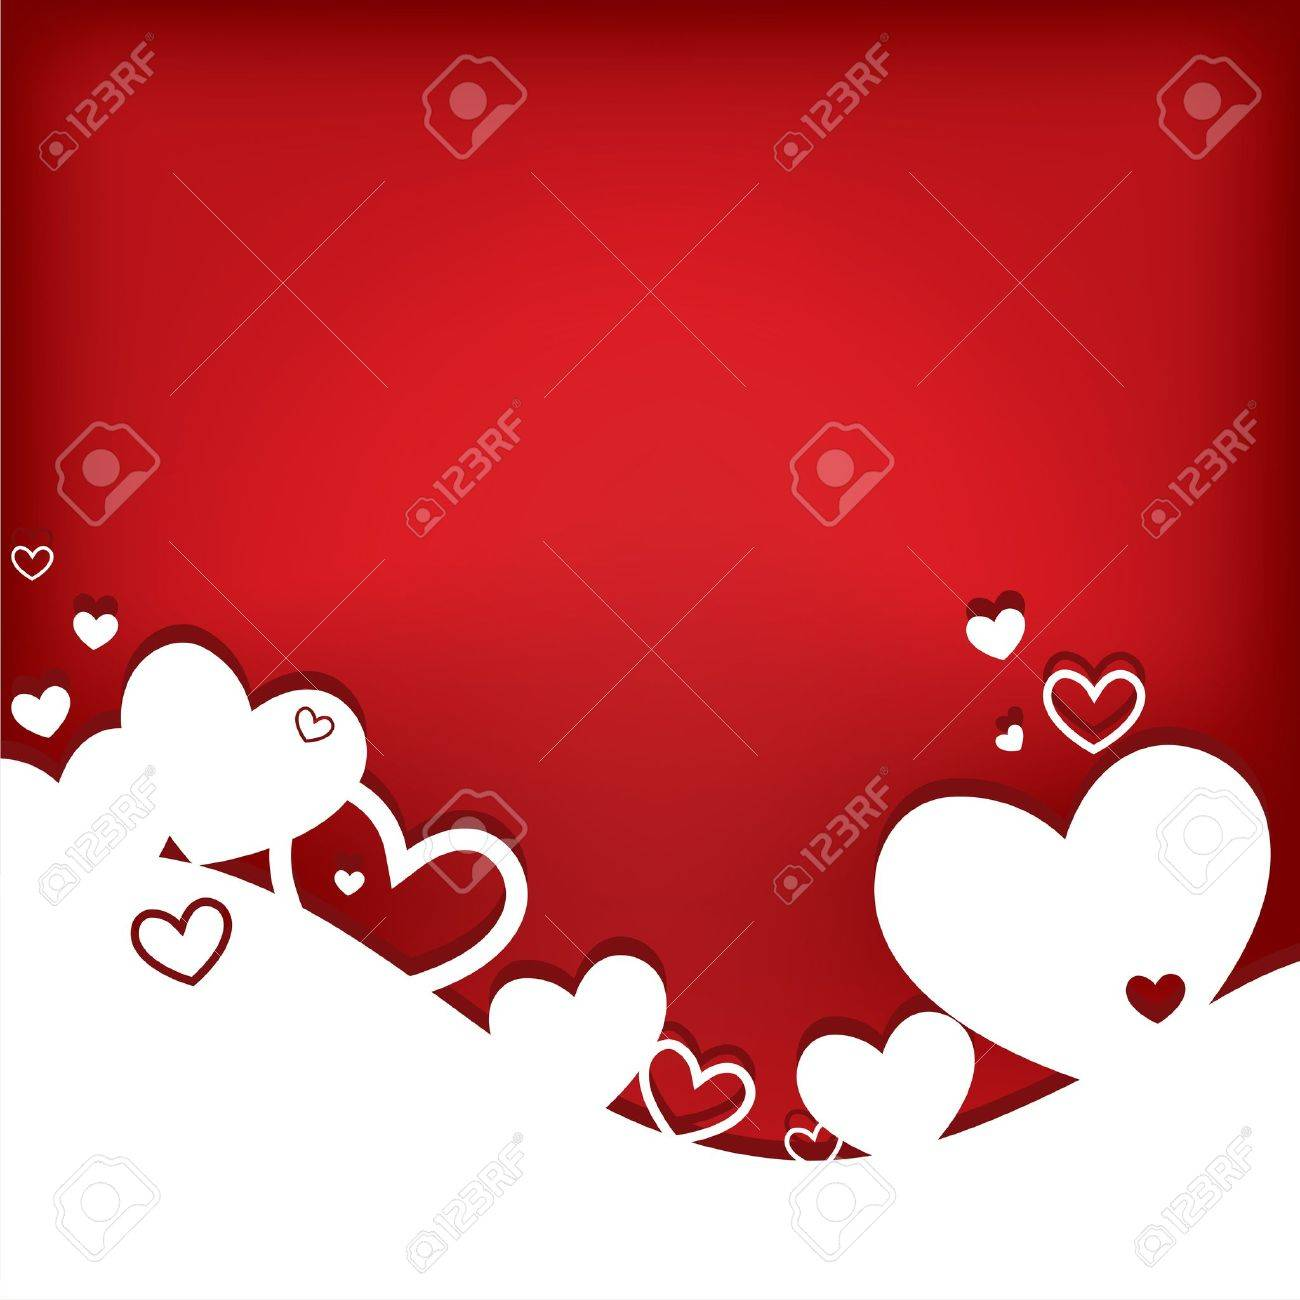 Hearts. Valentine card. Vector illustration. EPS10. Stock Vector - 11696934